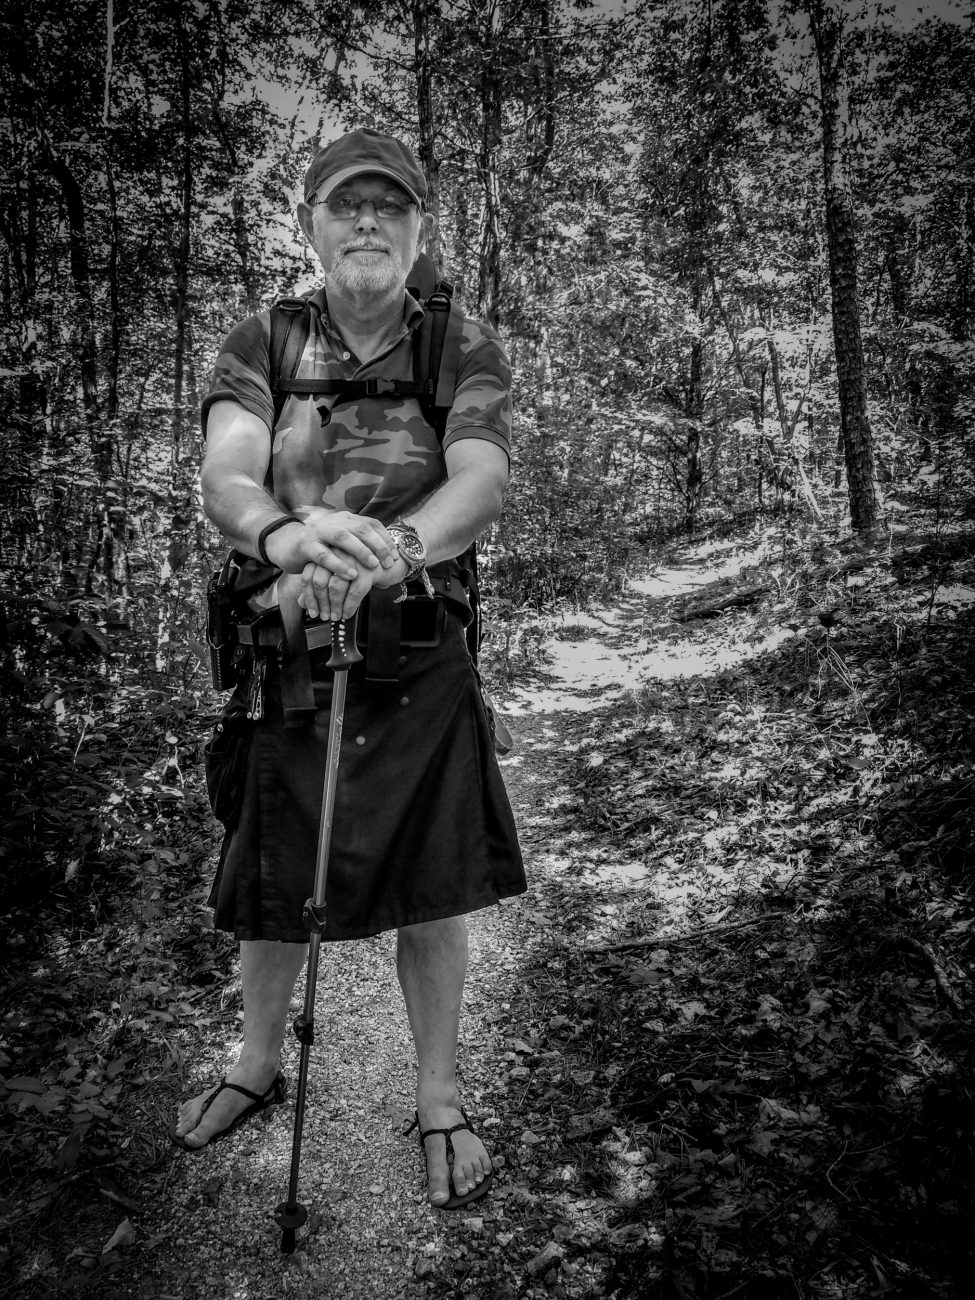 Black and White photograph of Gary Allman backpacking on the Ozark / Berryman Trail. Gary is wearing a kilt and huaraches.